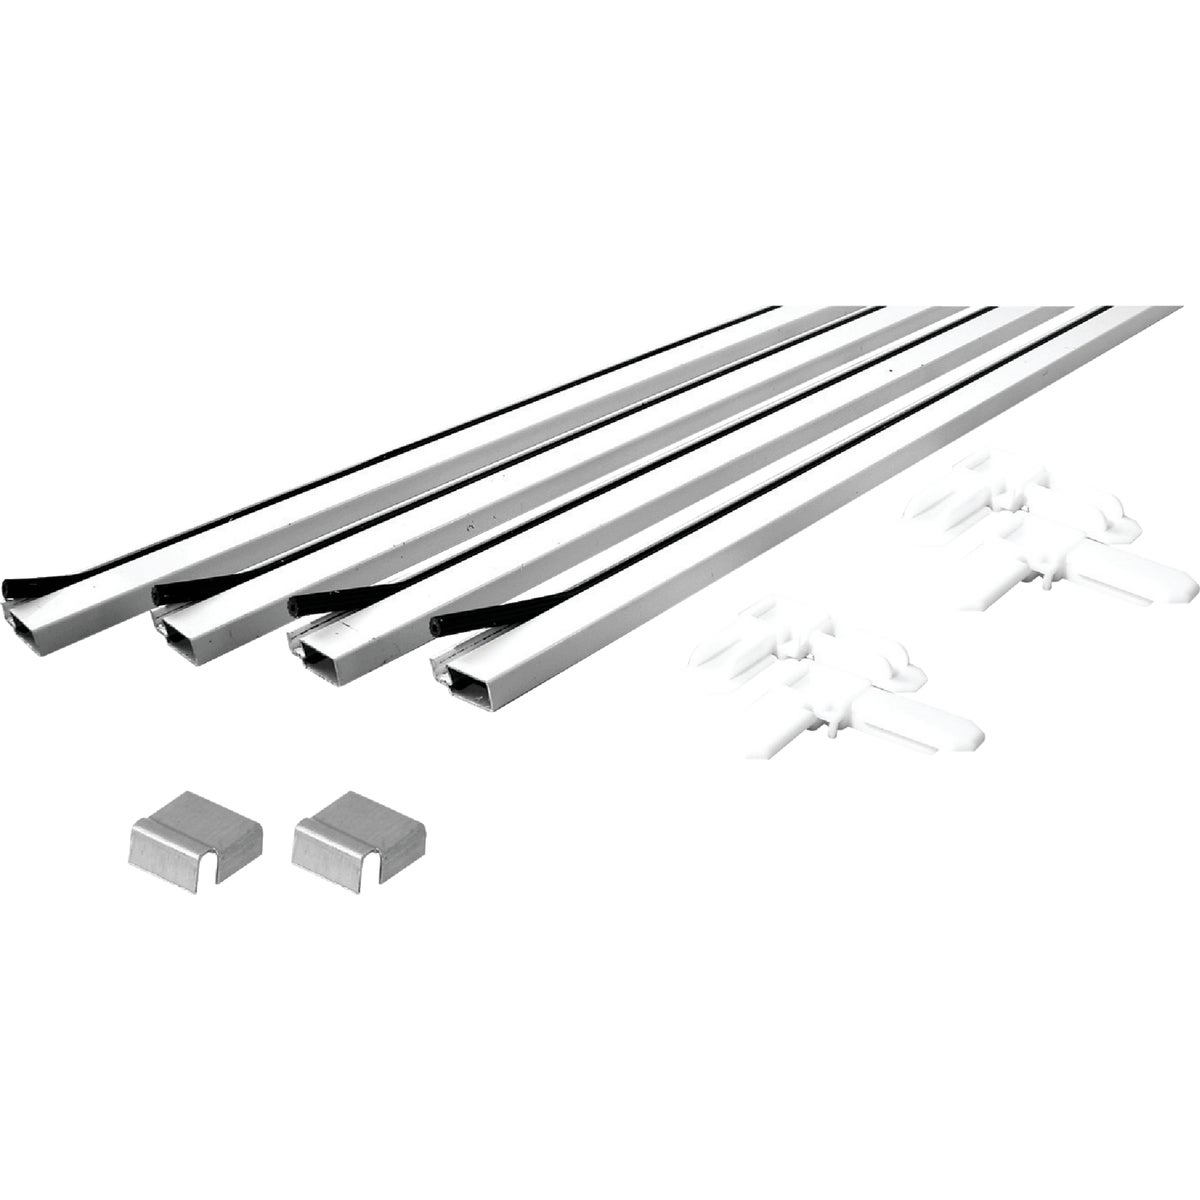 3/4X5/16X4' FRAME KIT - PL7813 by Prime Line Products